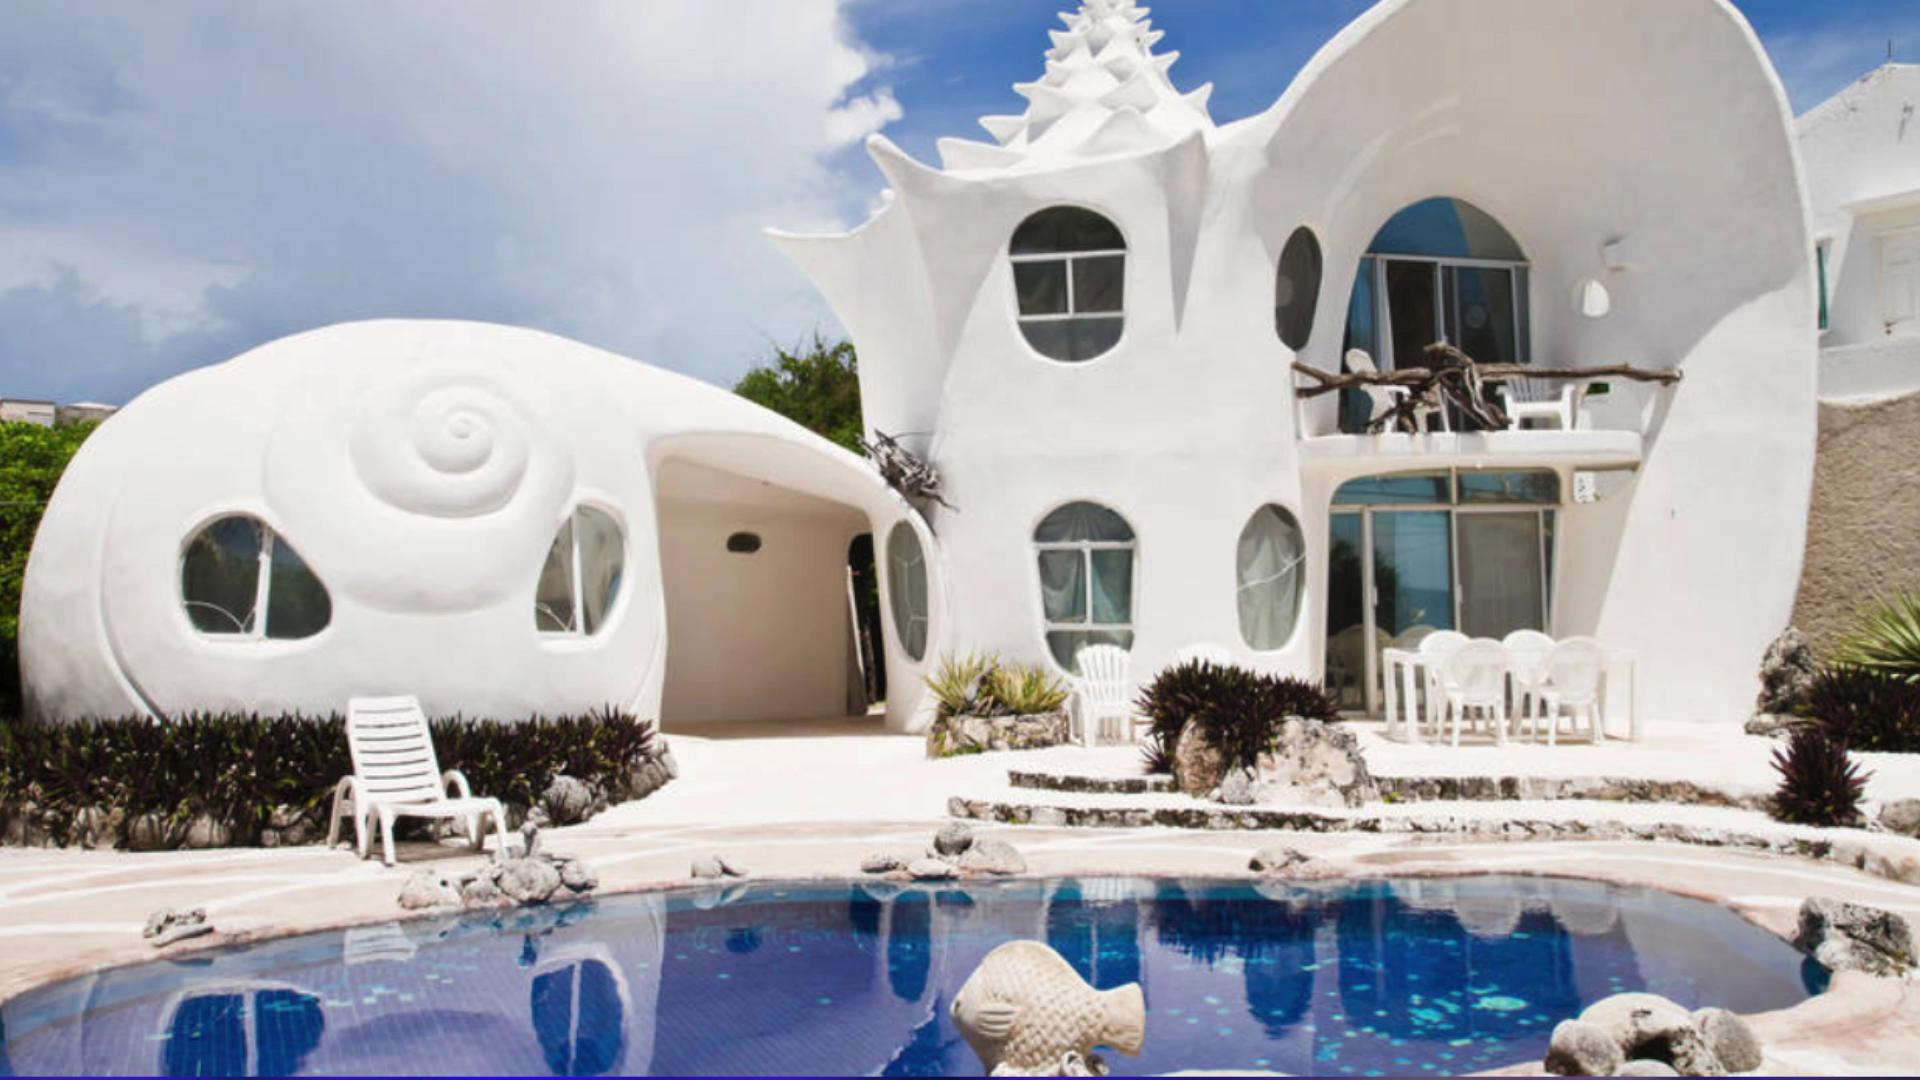 Wildest Airbnb rentals you have to check out